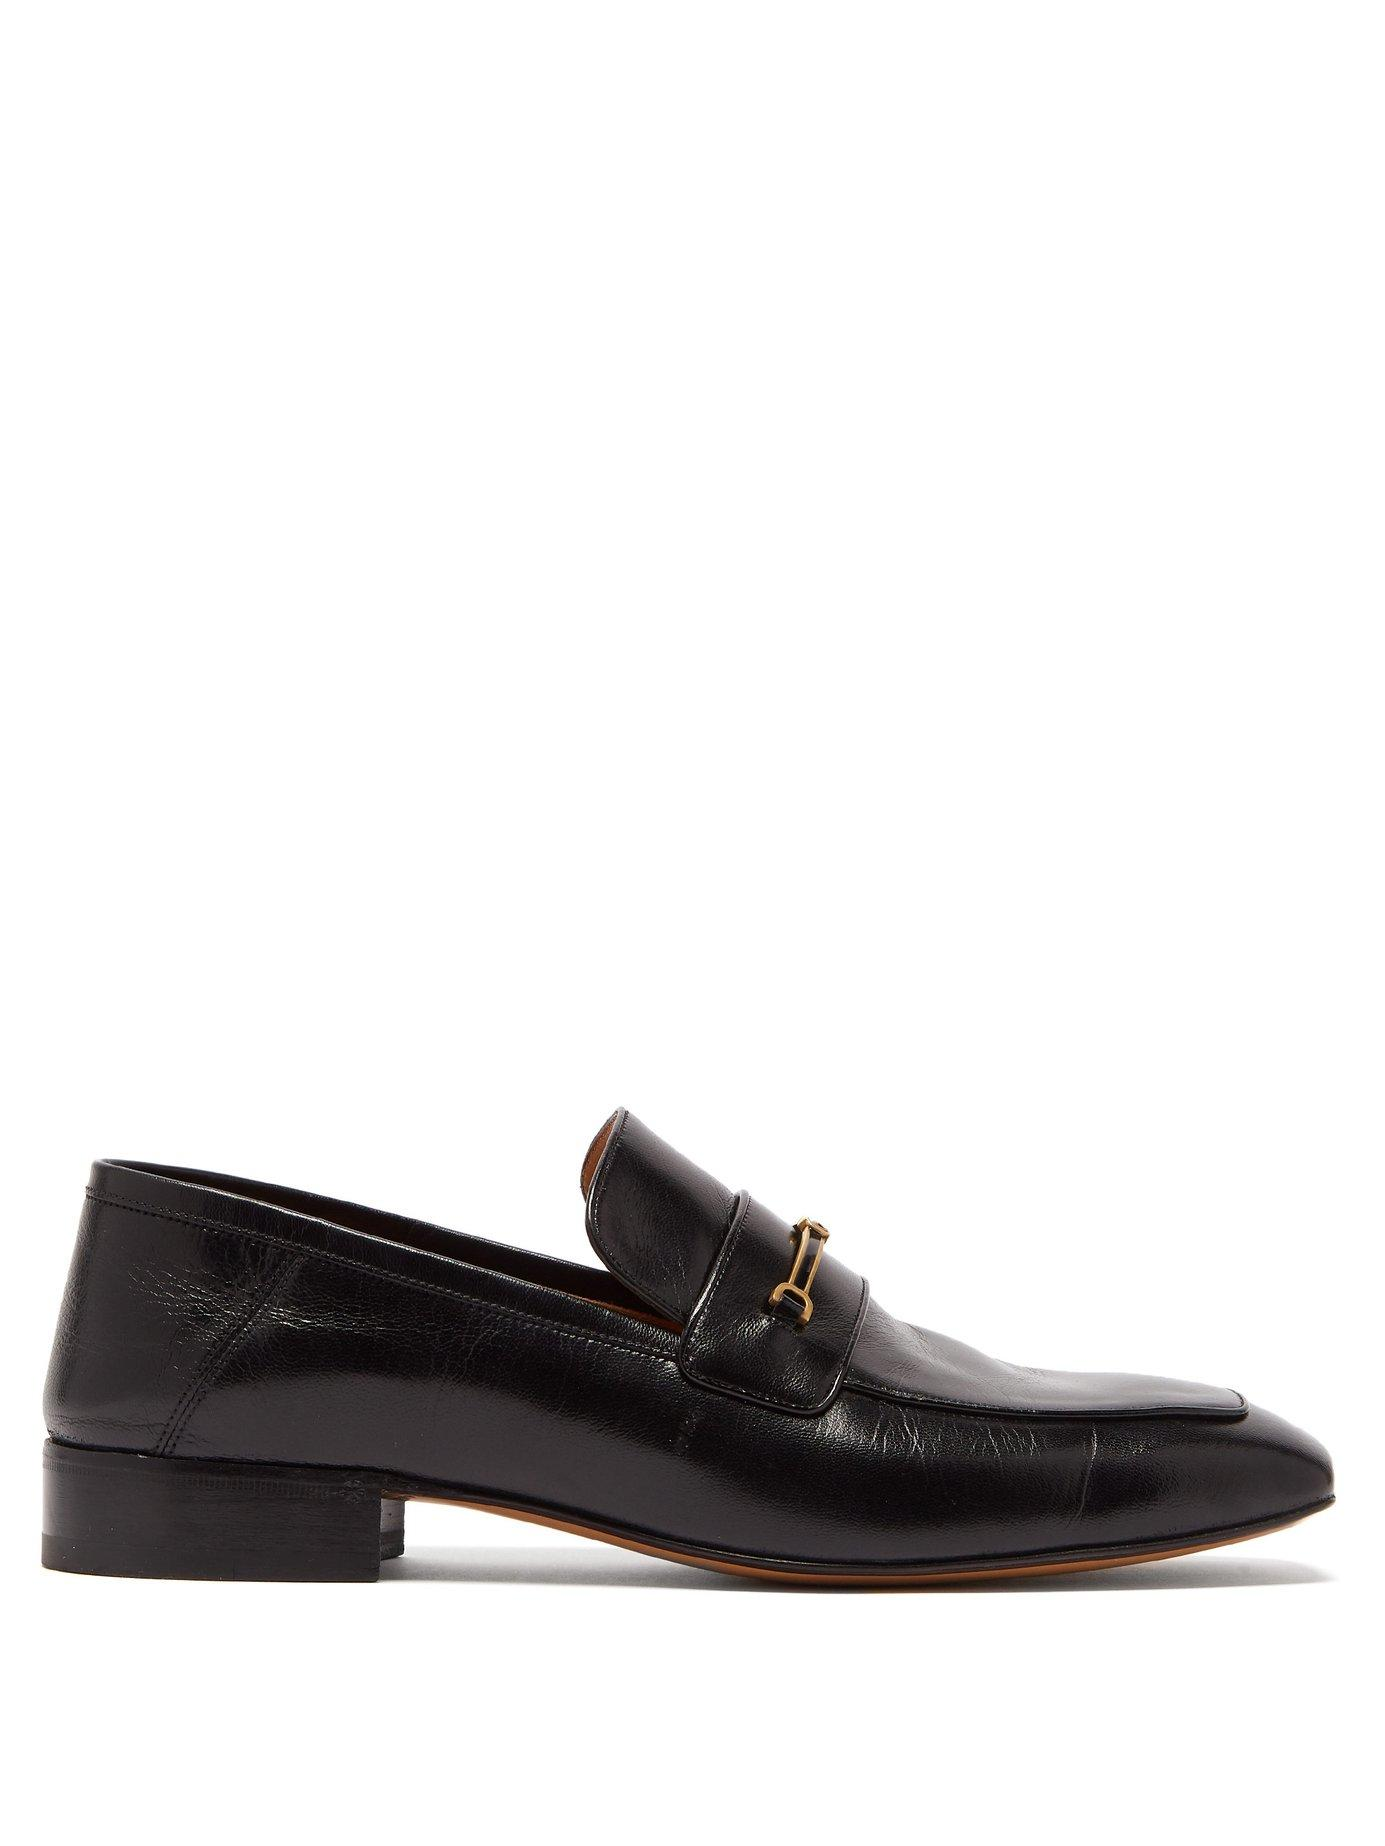 a6cc10d4b Lyst - Gucci Quentin Gg Horsebit Leather Loafers in Black for Men